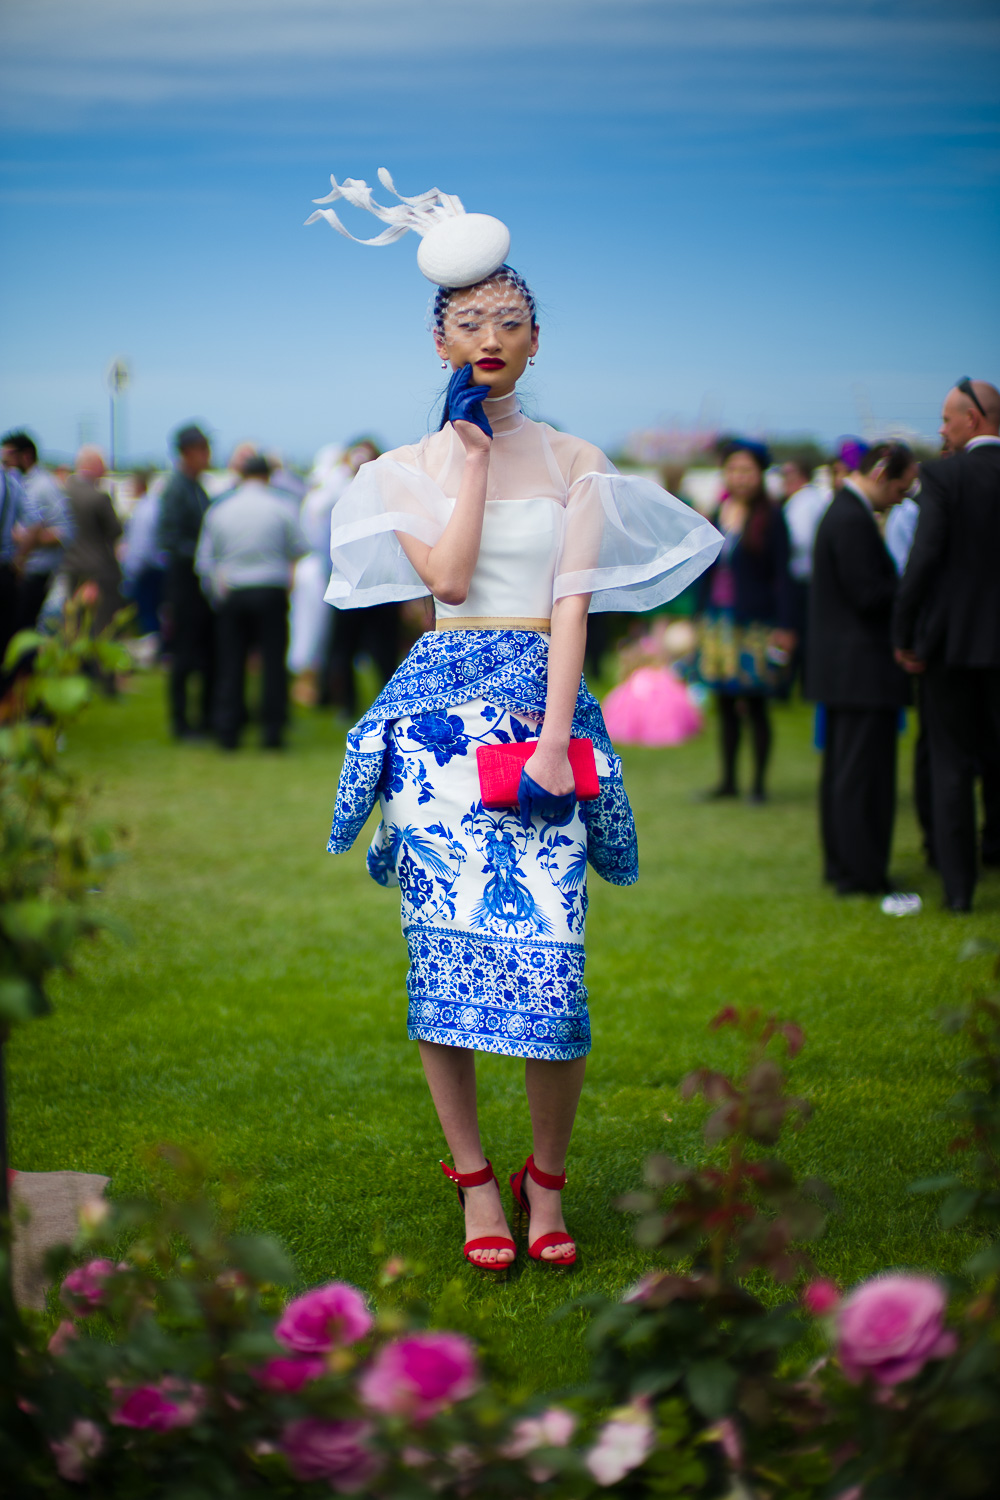 Melbourne Cup 2015 | Leica SL with Noctilux-M 50mm | ISO 50 at f/0.95 for 1/8000sec | Melbourne, Australia